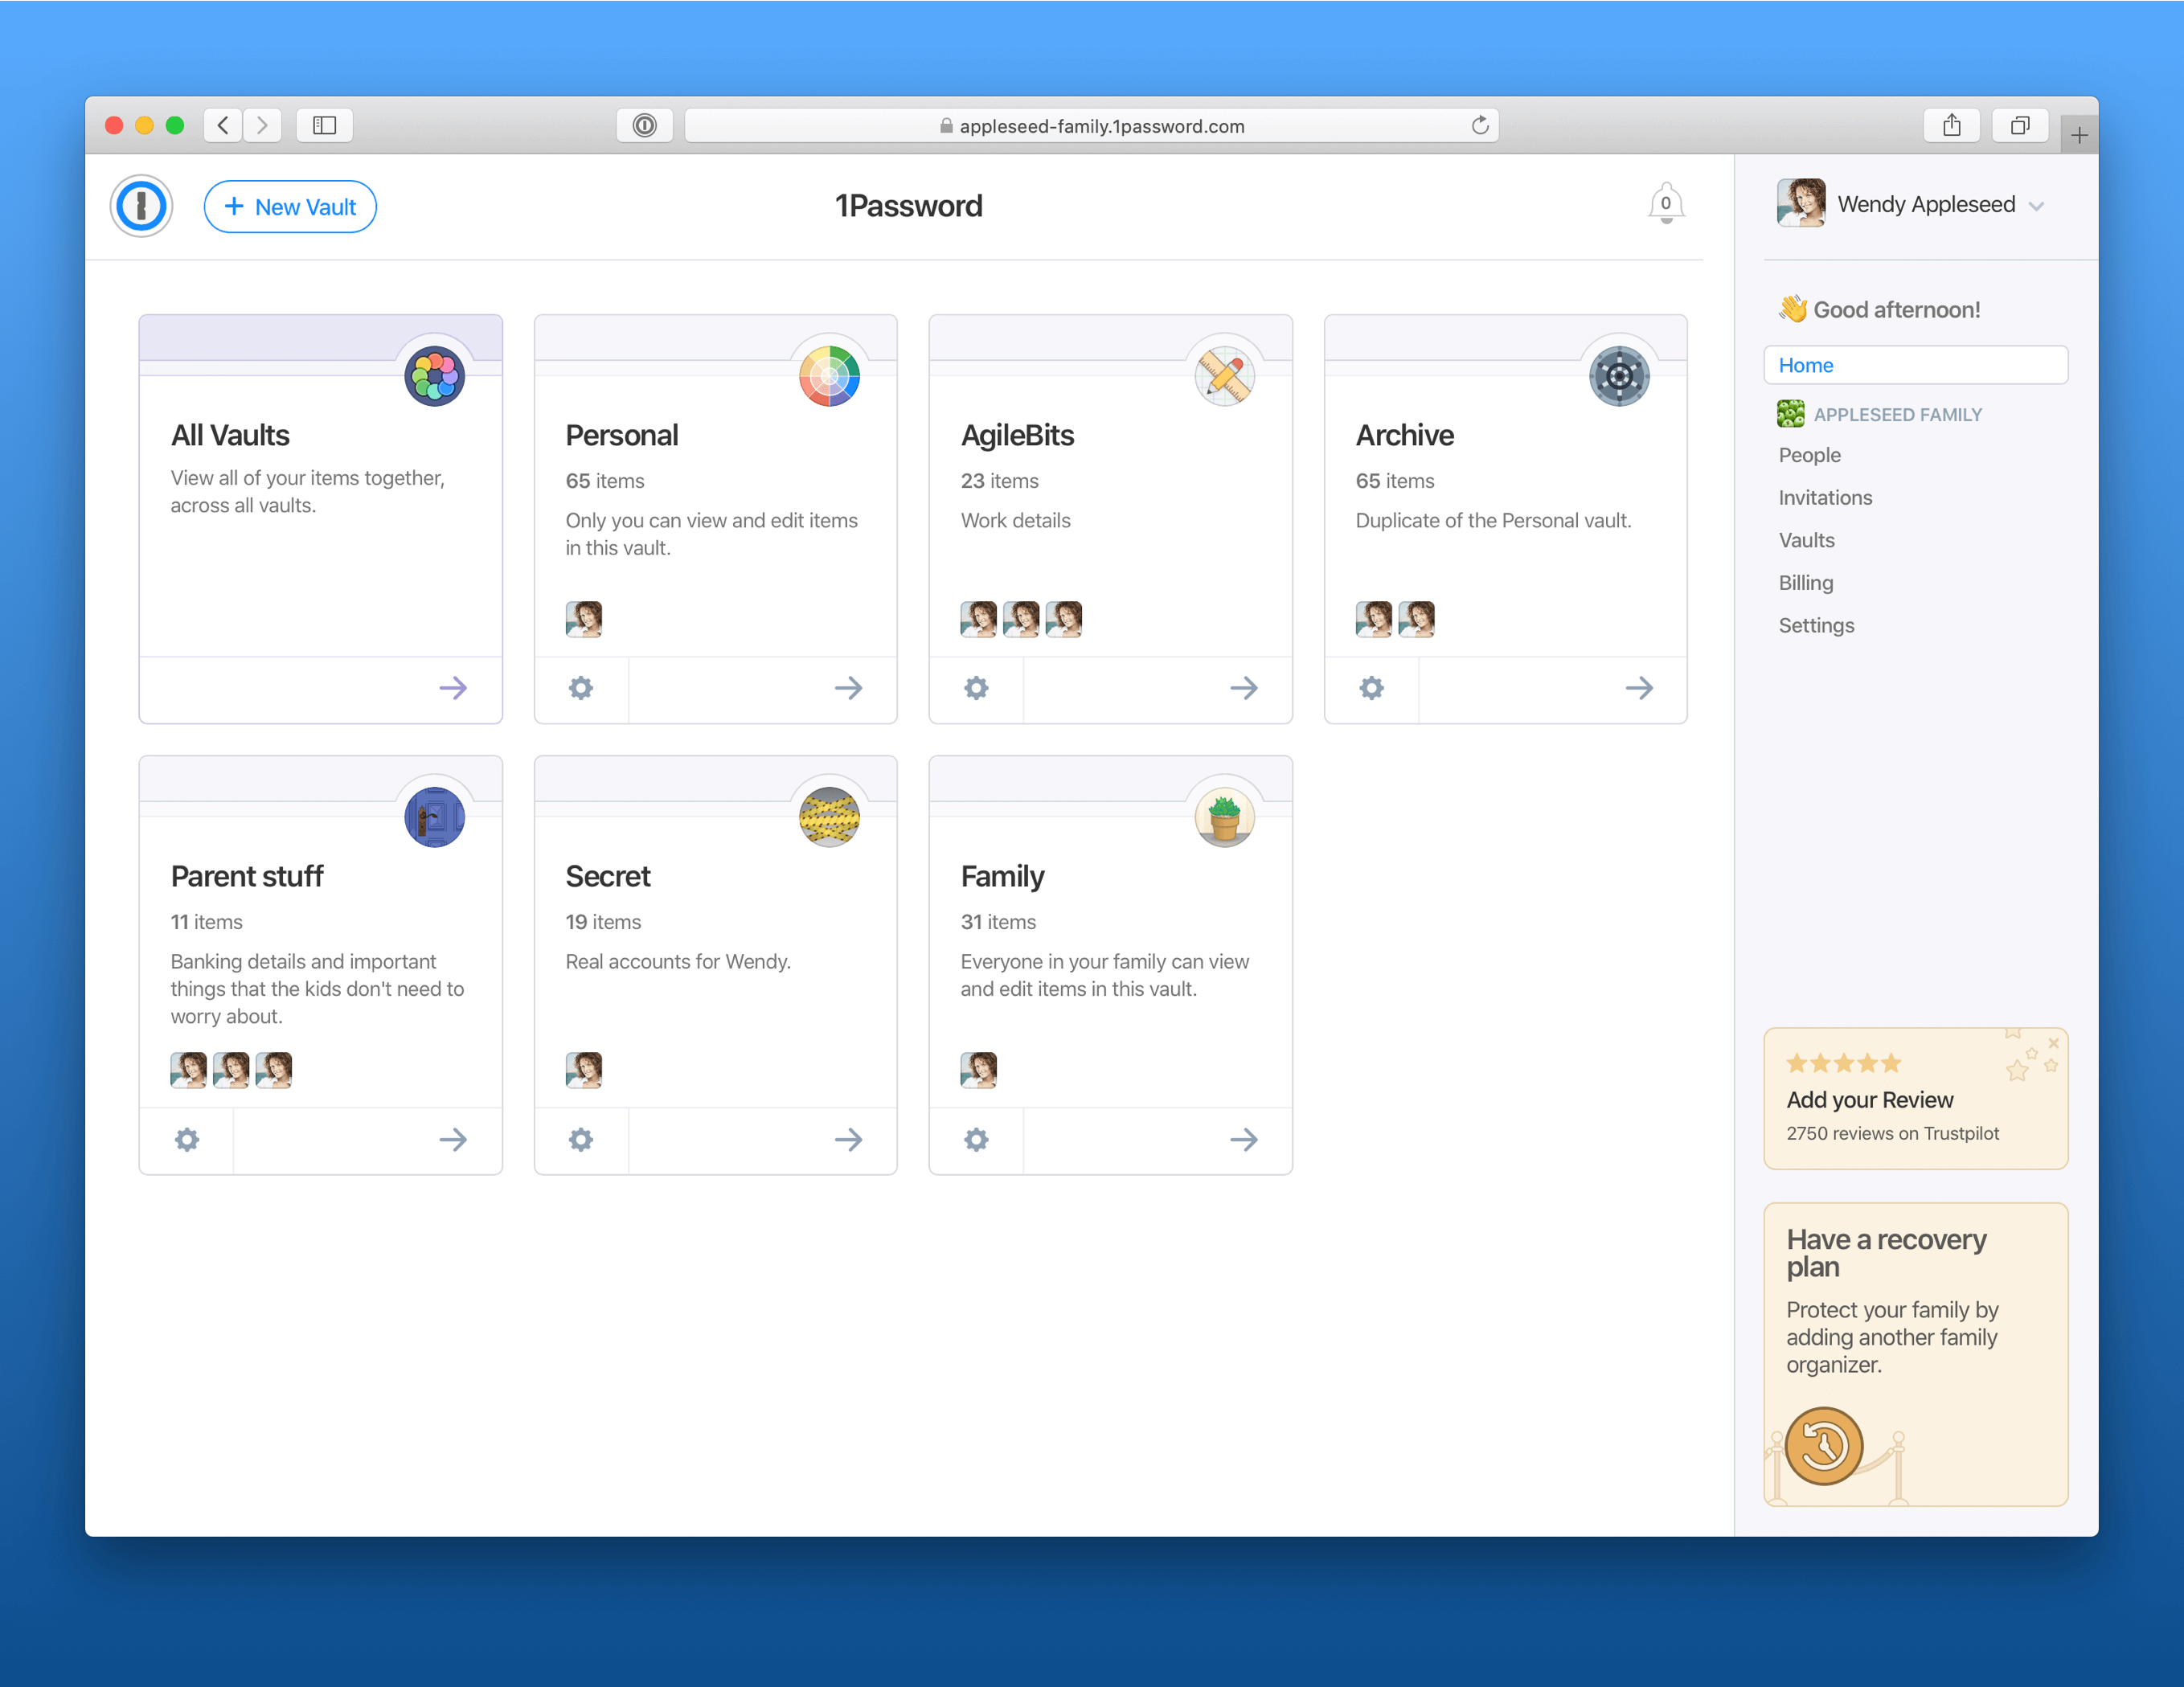 1Password Web-Oberfläche - Vaults